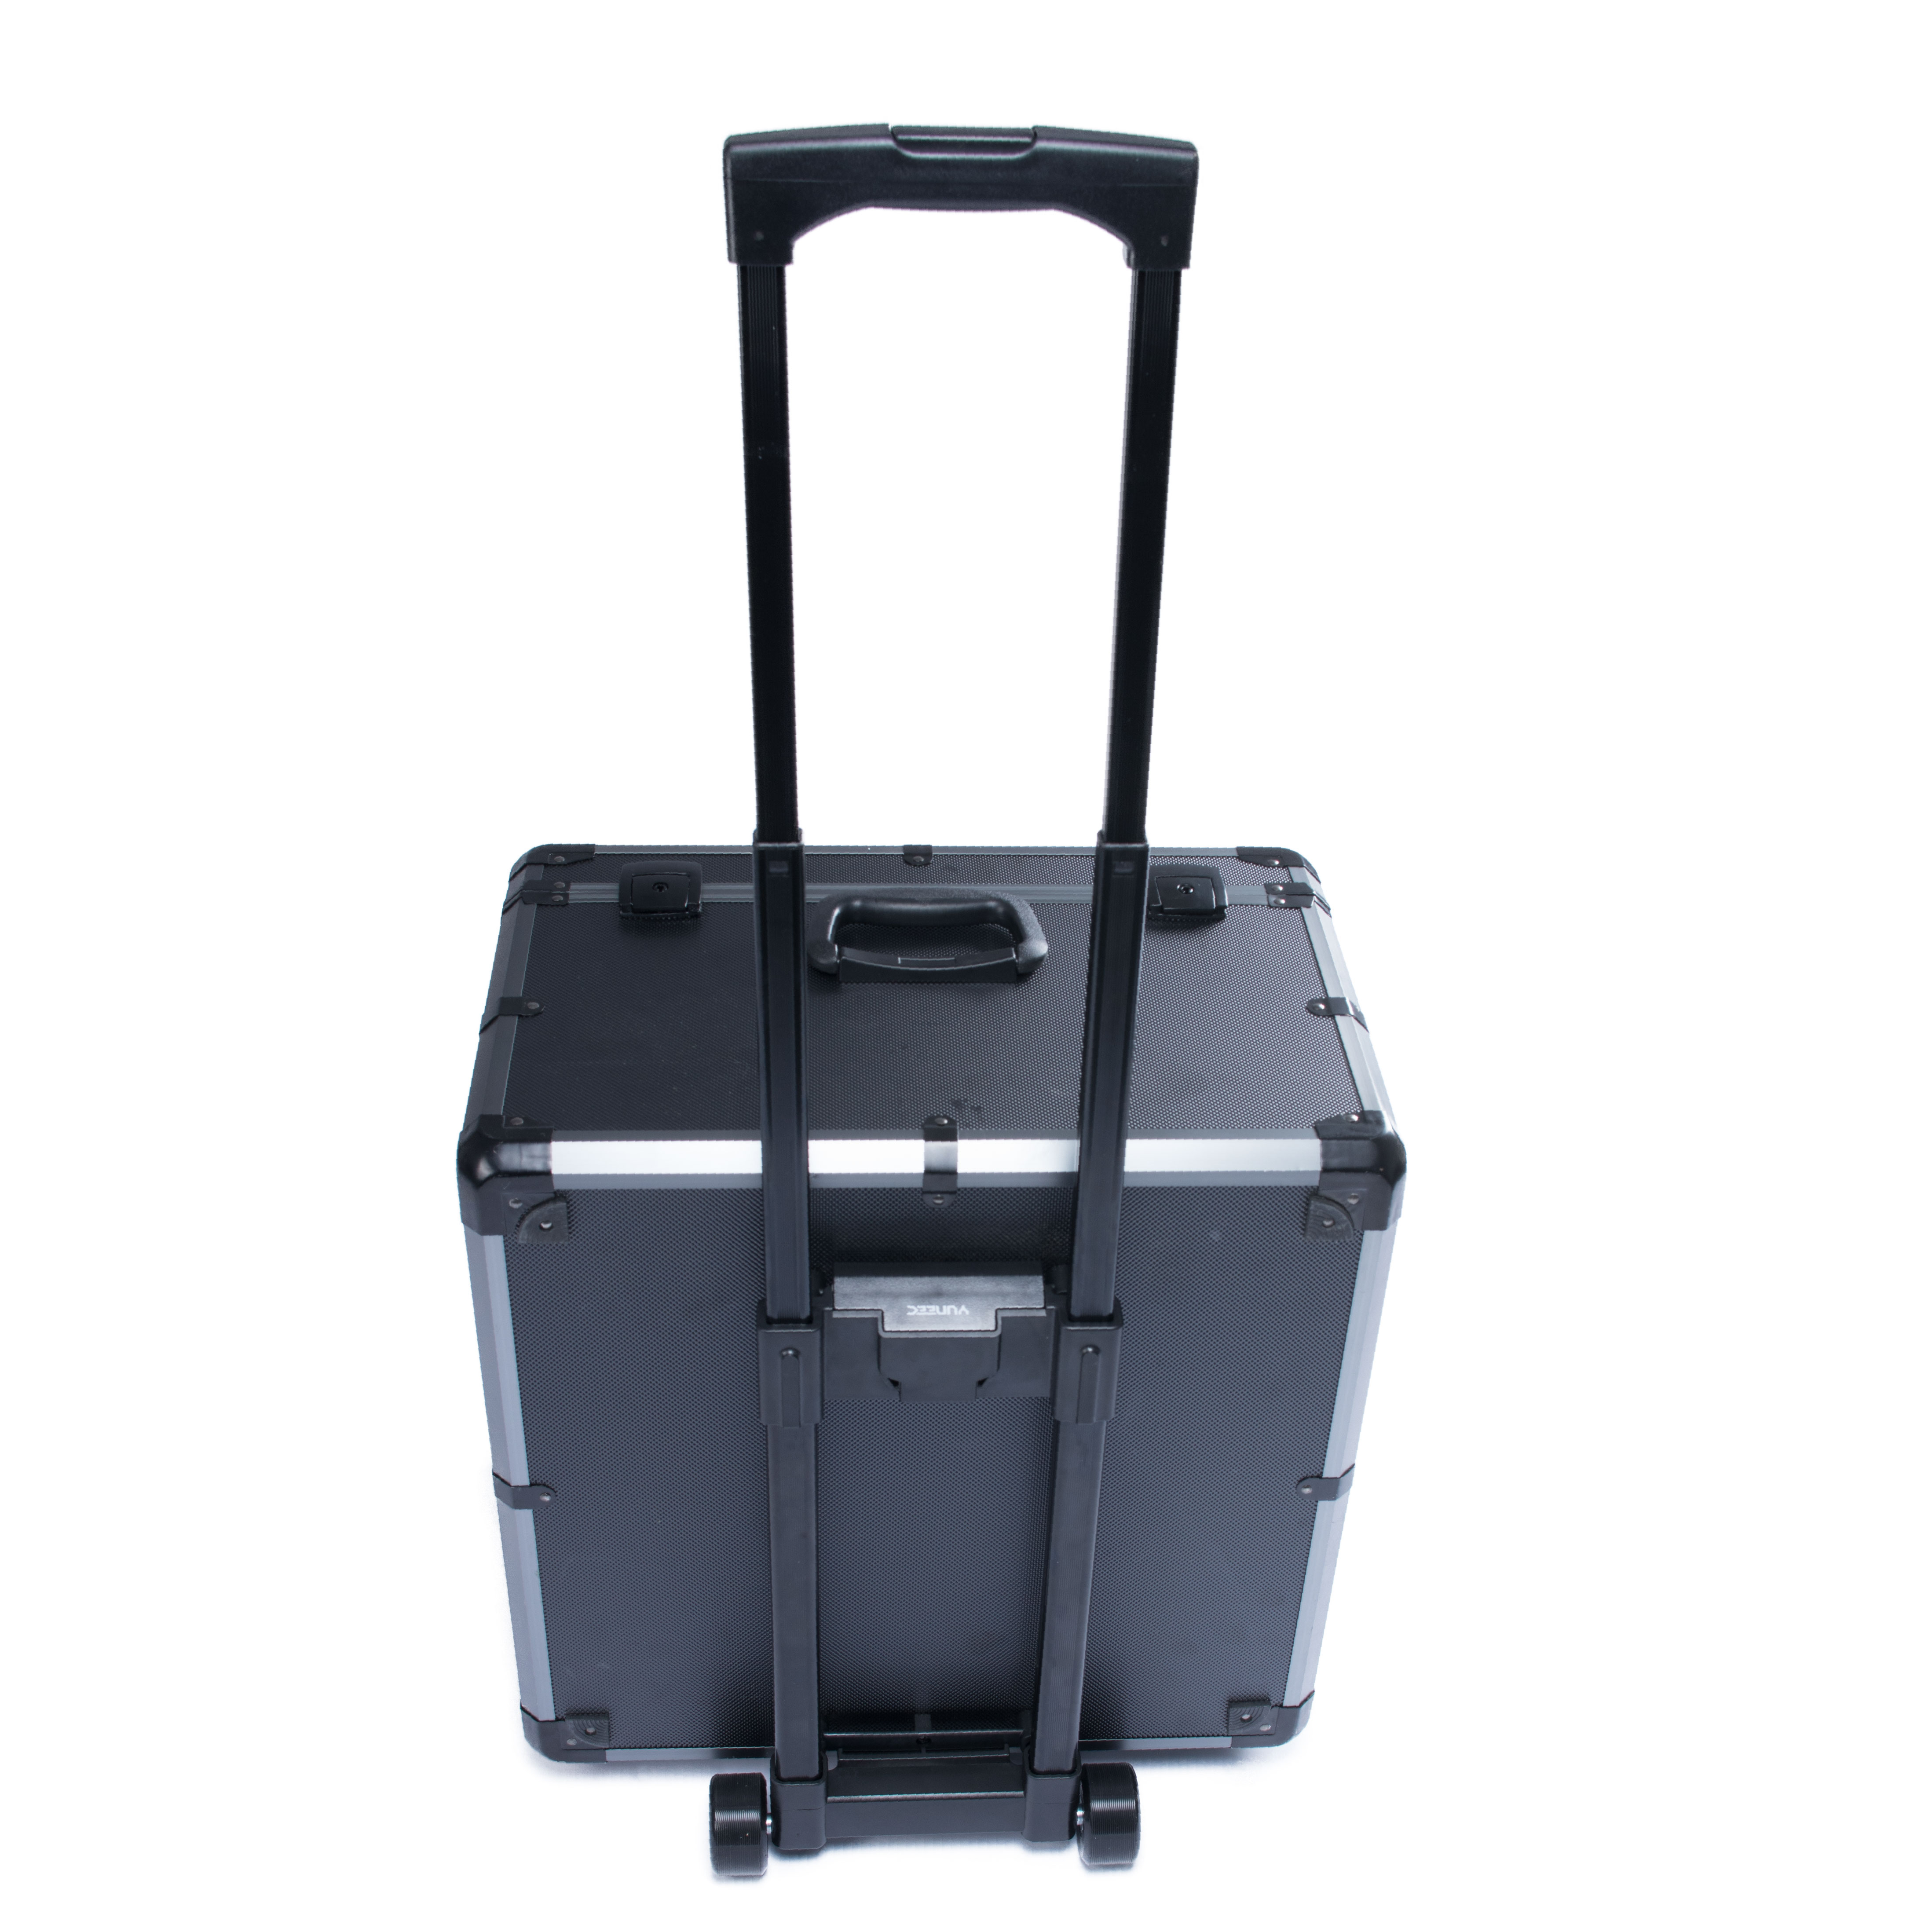 Alukoffer Trolley Kopterdreams Trolleygriff Alukoffer Q500 4k